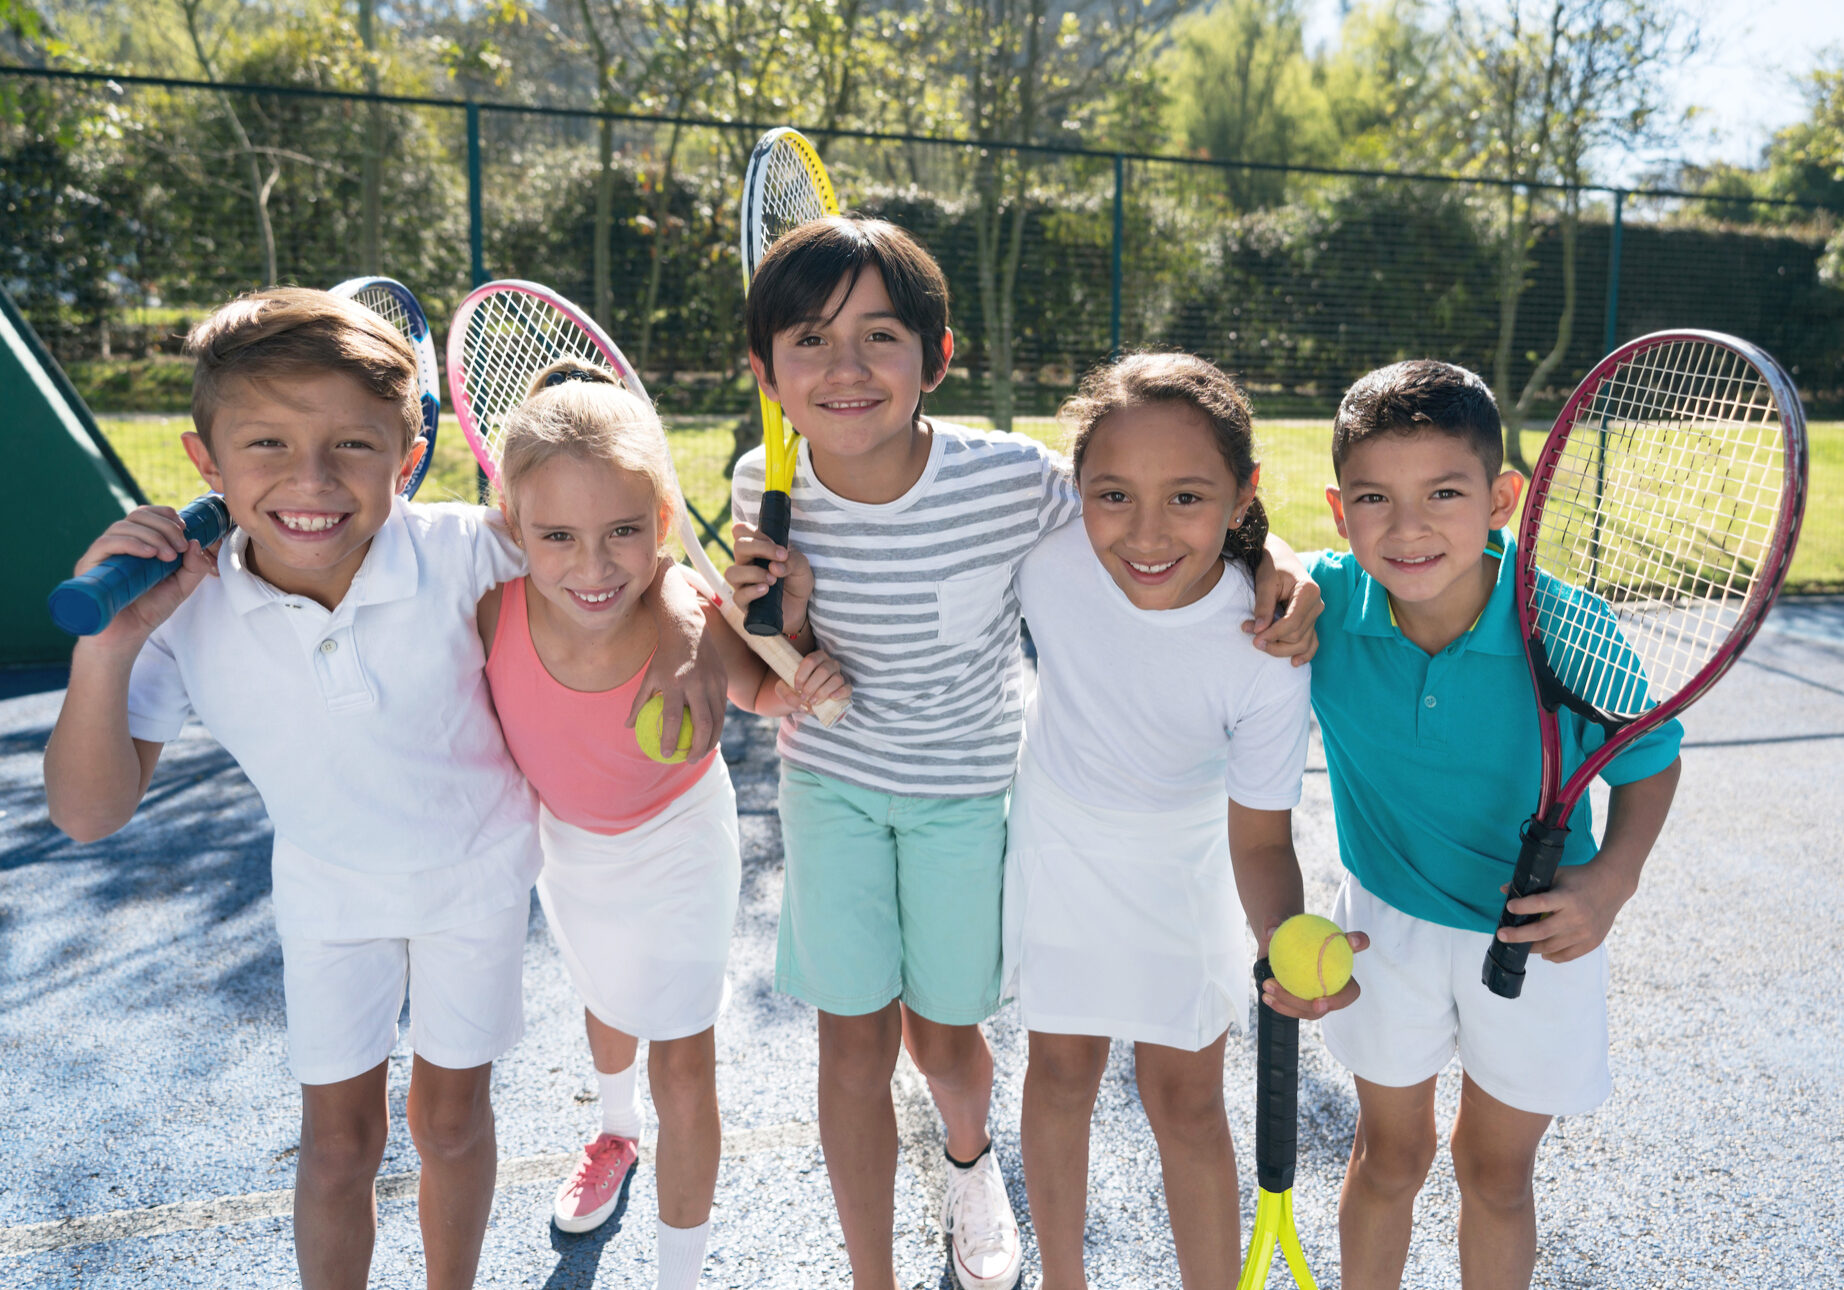 Group of children at the tennis court embracing each other and holding their rackets looking at camera smiling very happy